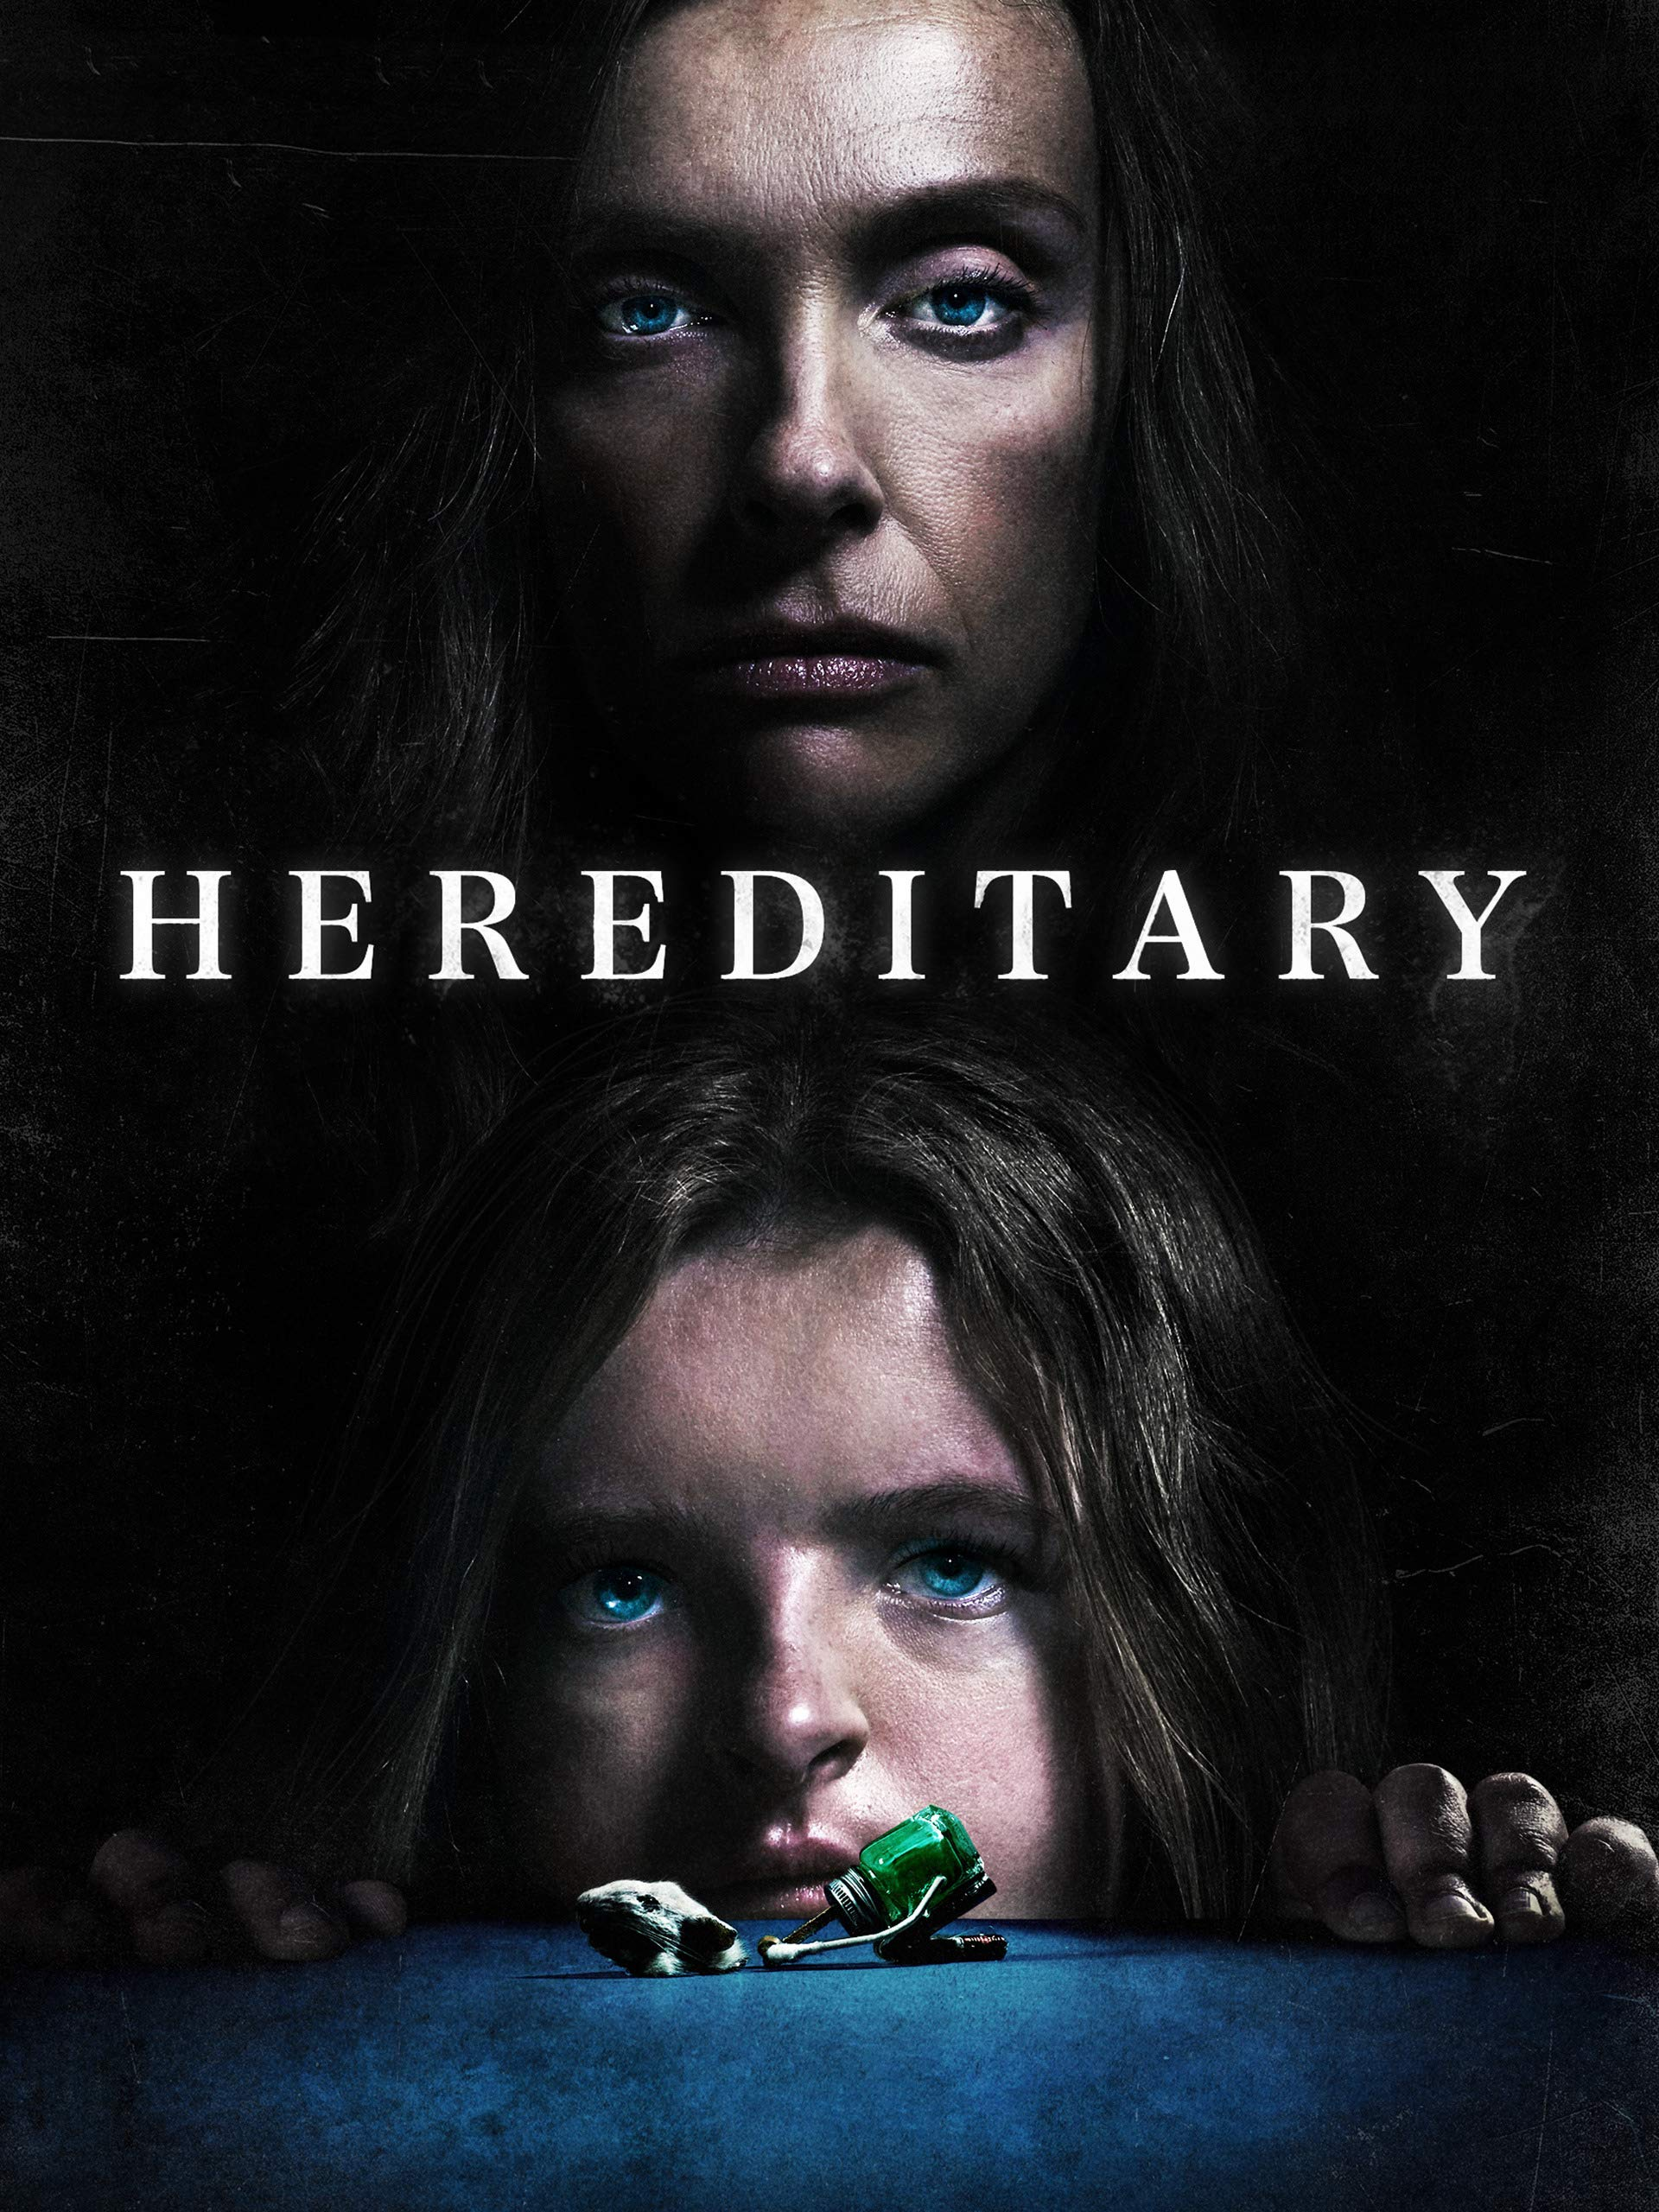 Amazon.com: Hereditary (4K UHD): Toni Collette, Alex Wolff, Milly ...